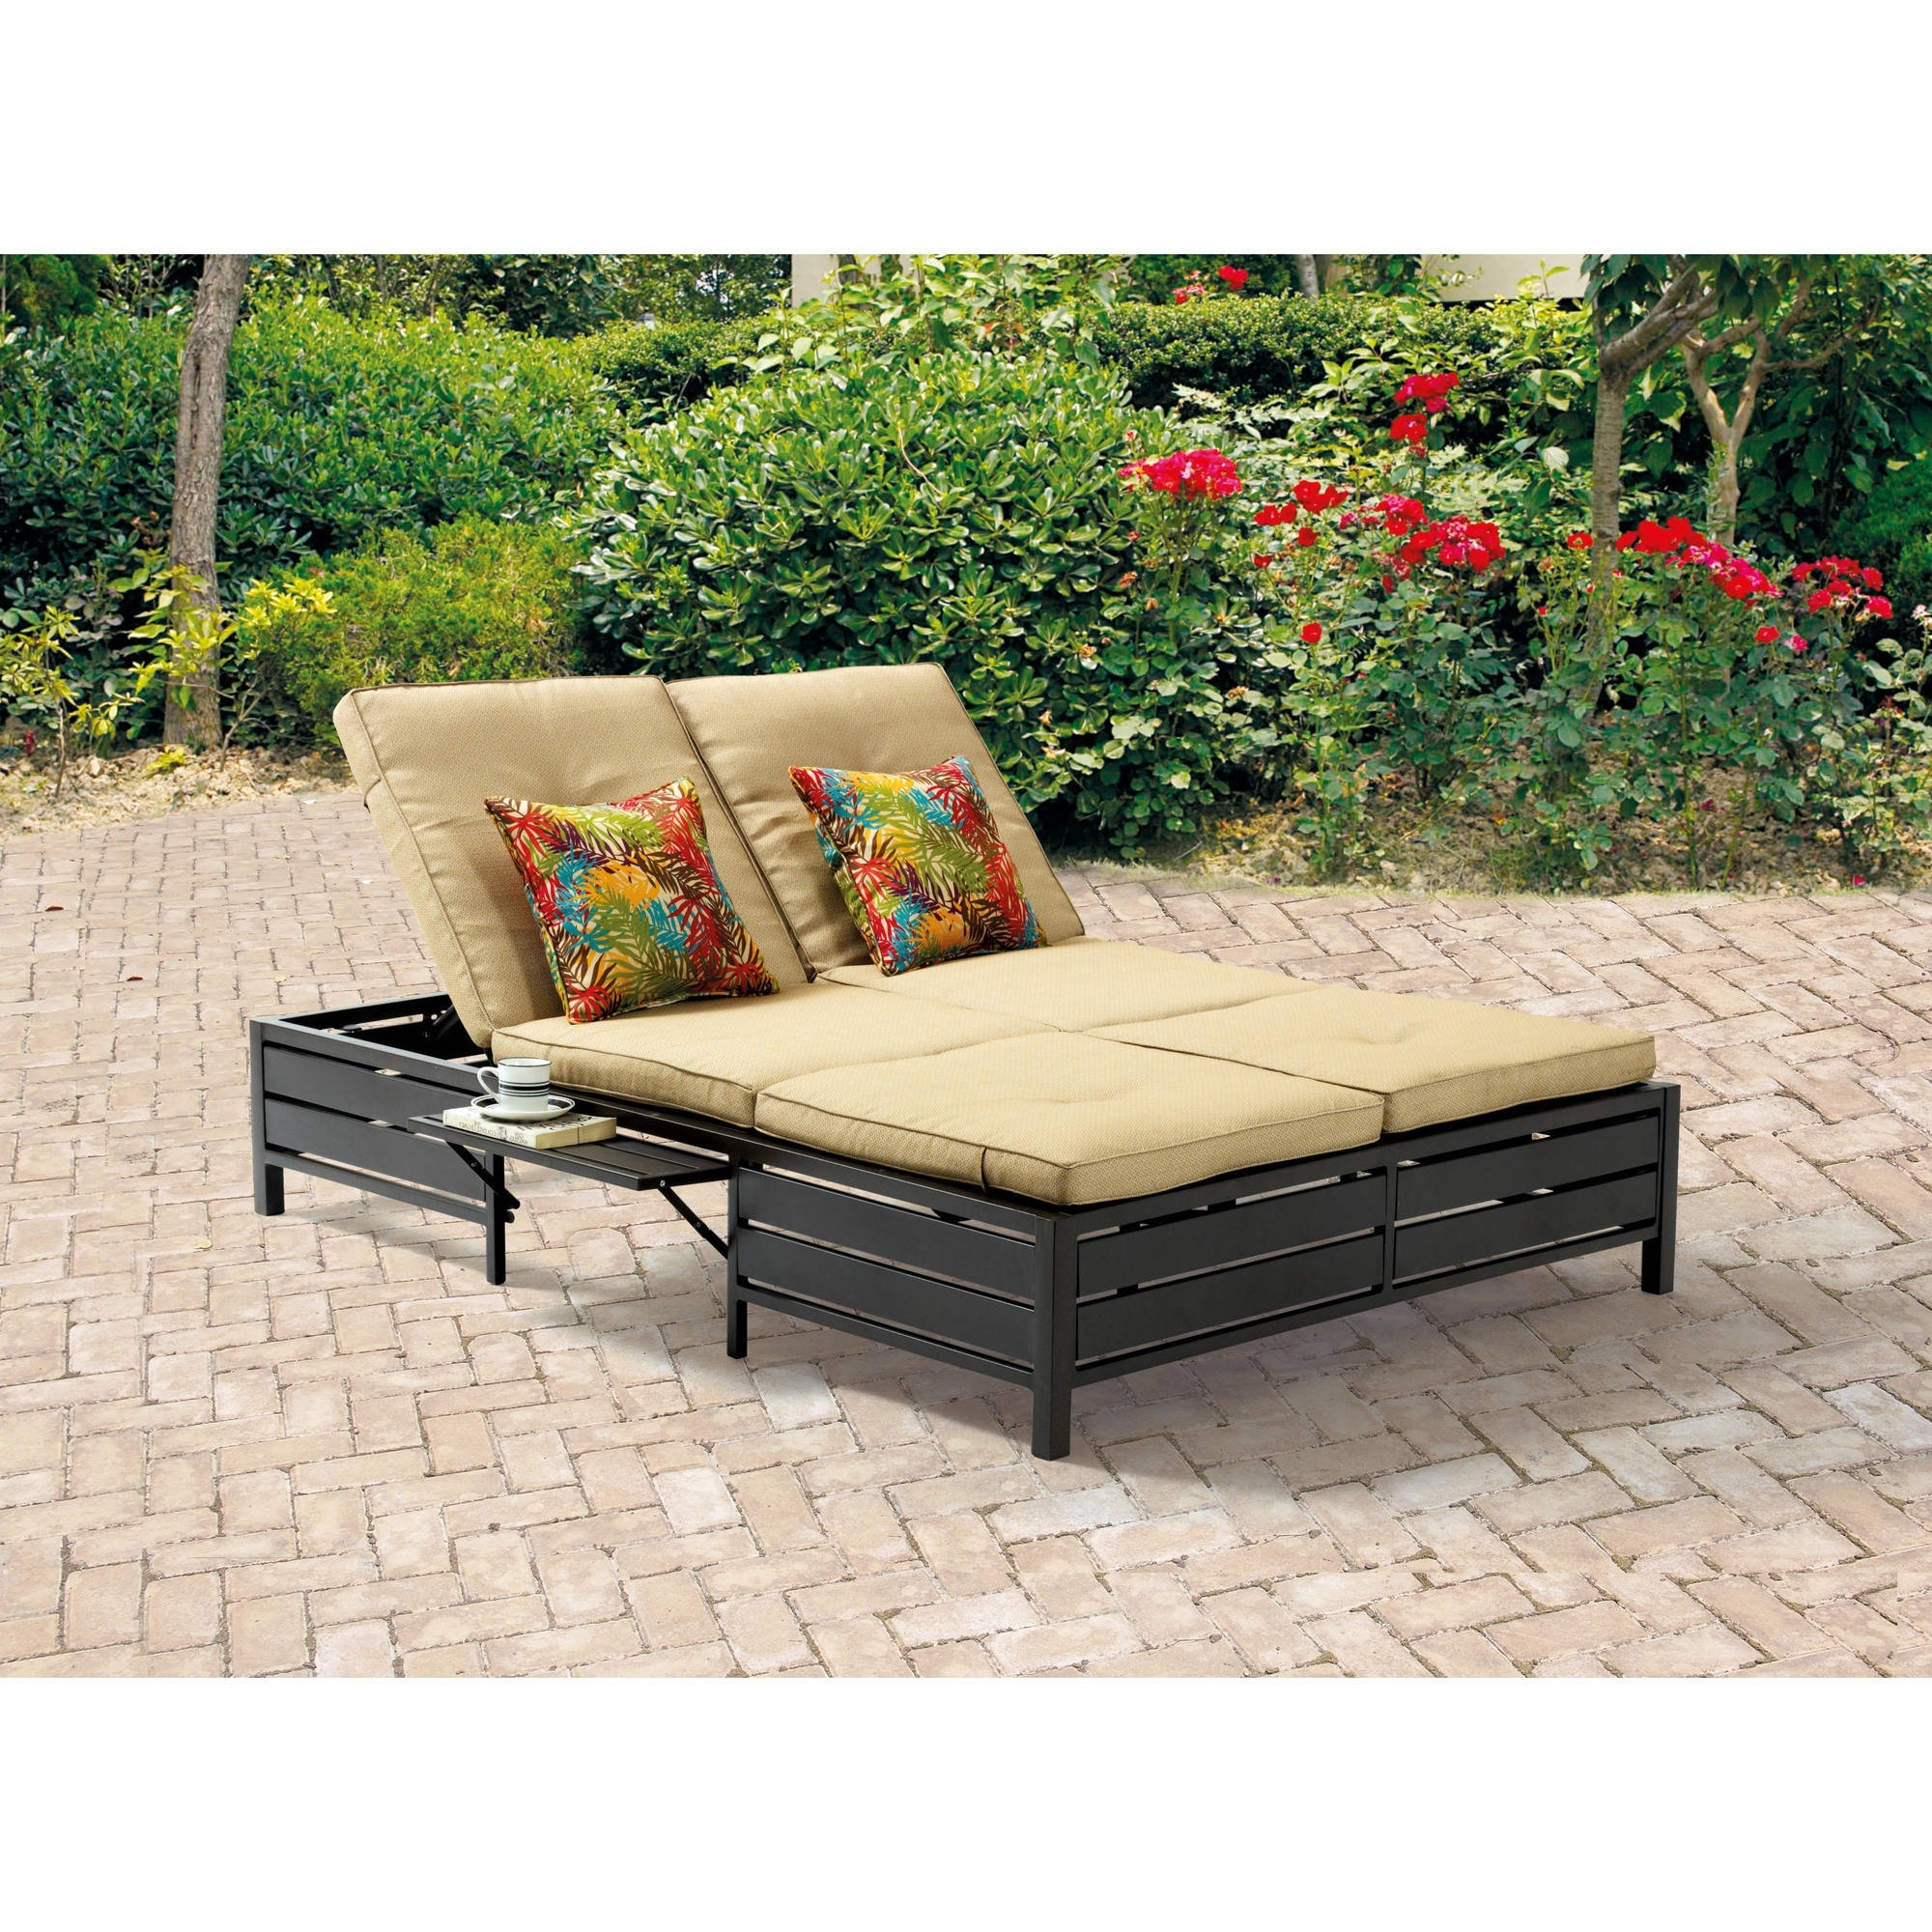 Best 15 Of Walmart Outdoor Chaise Lounges